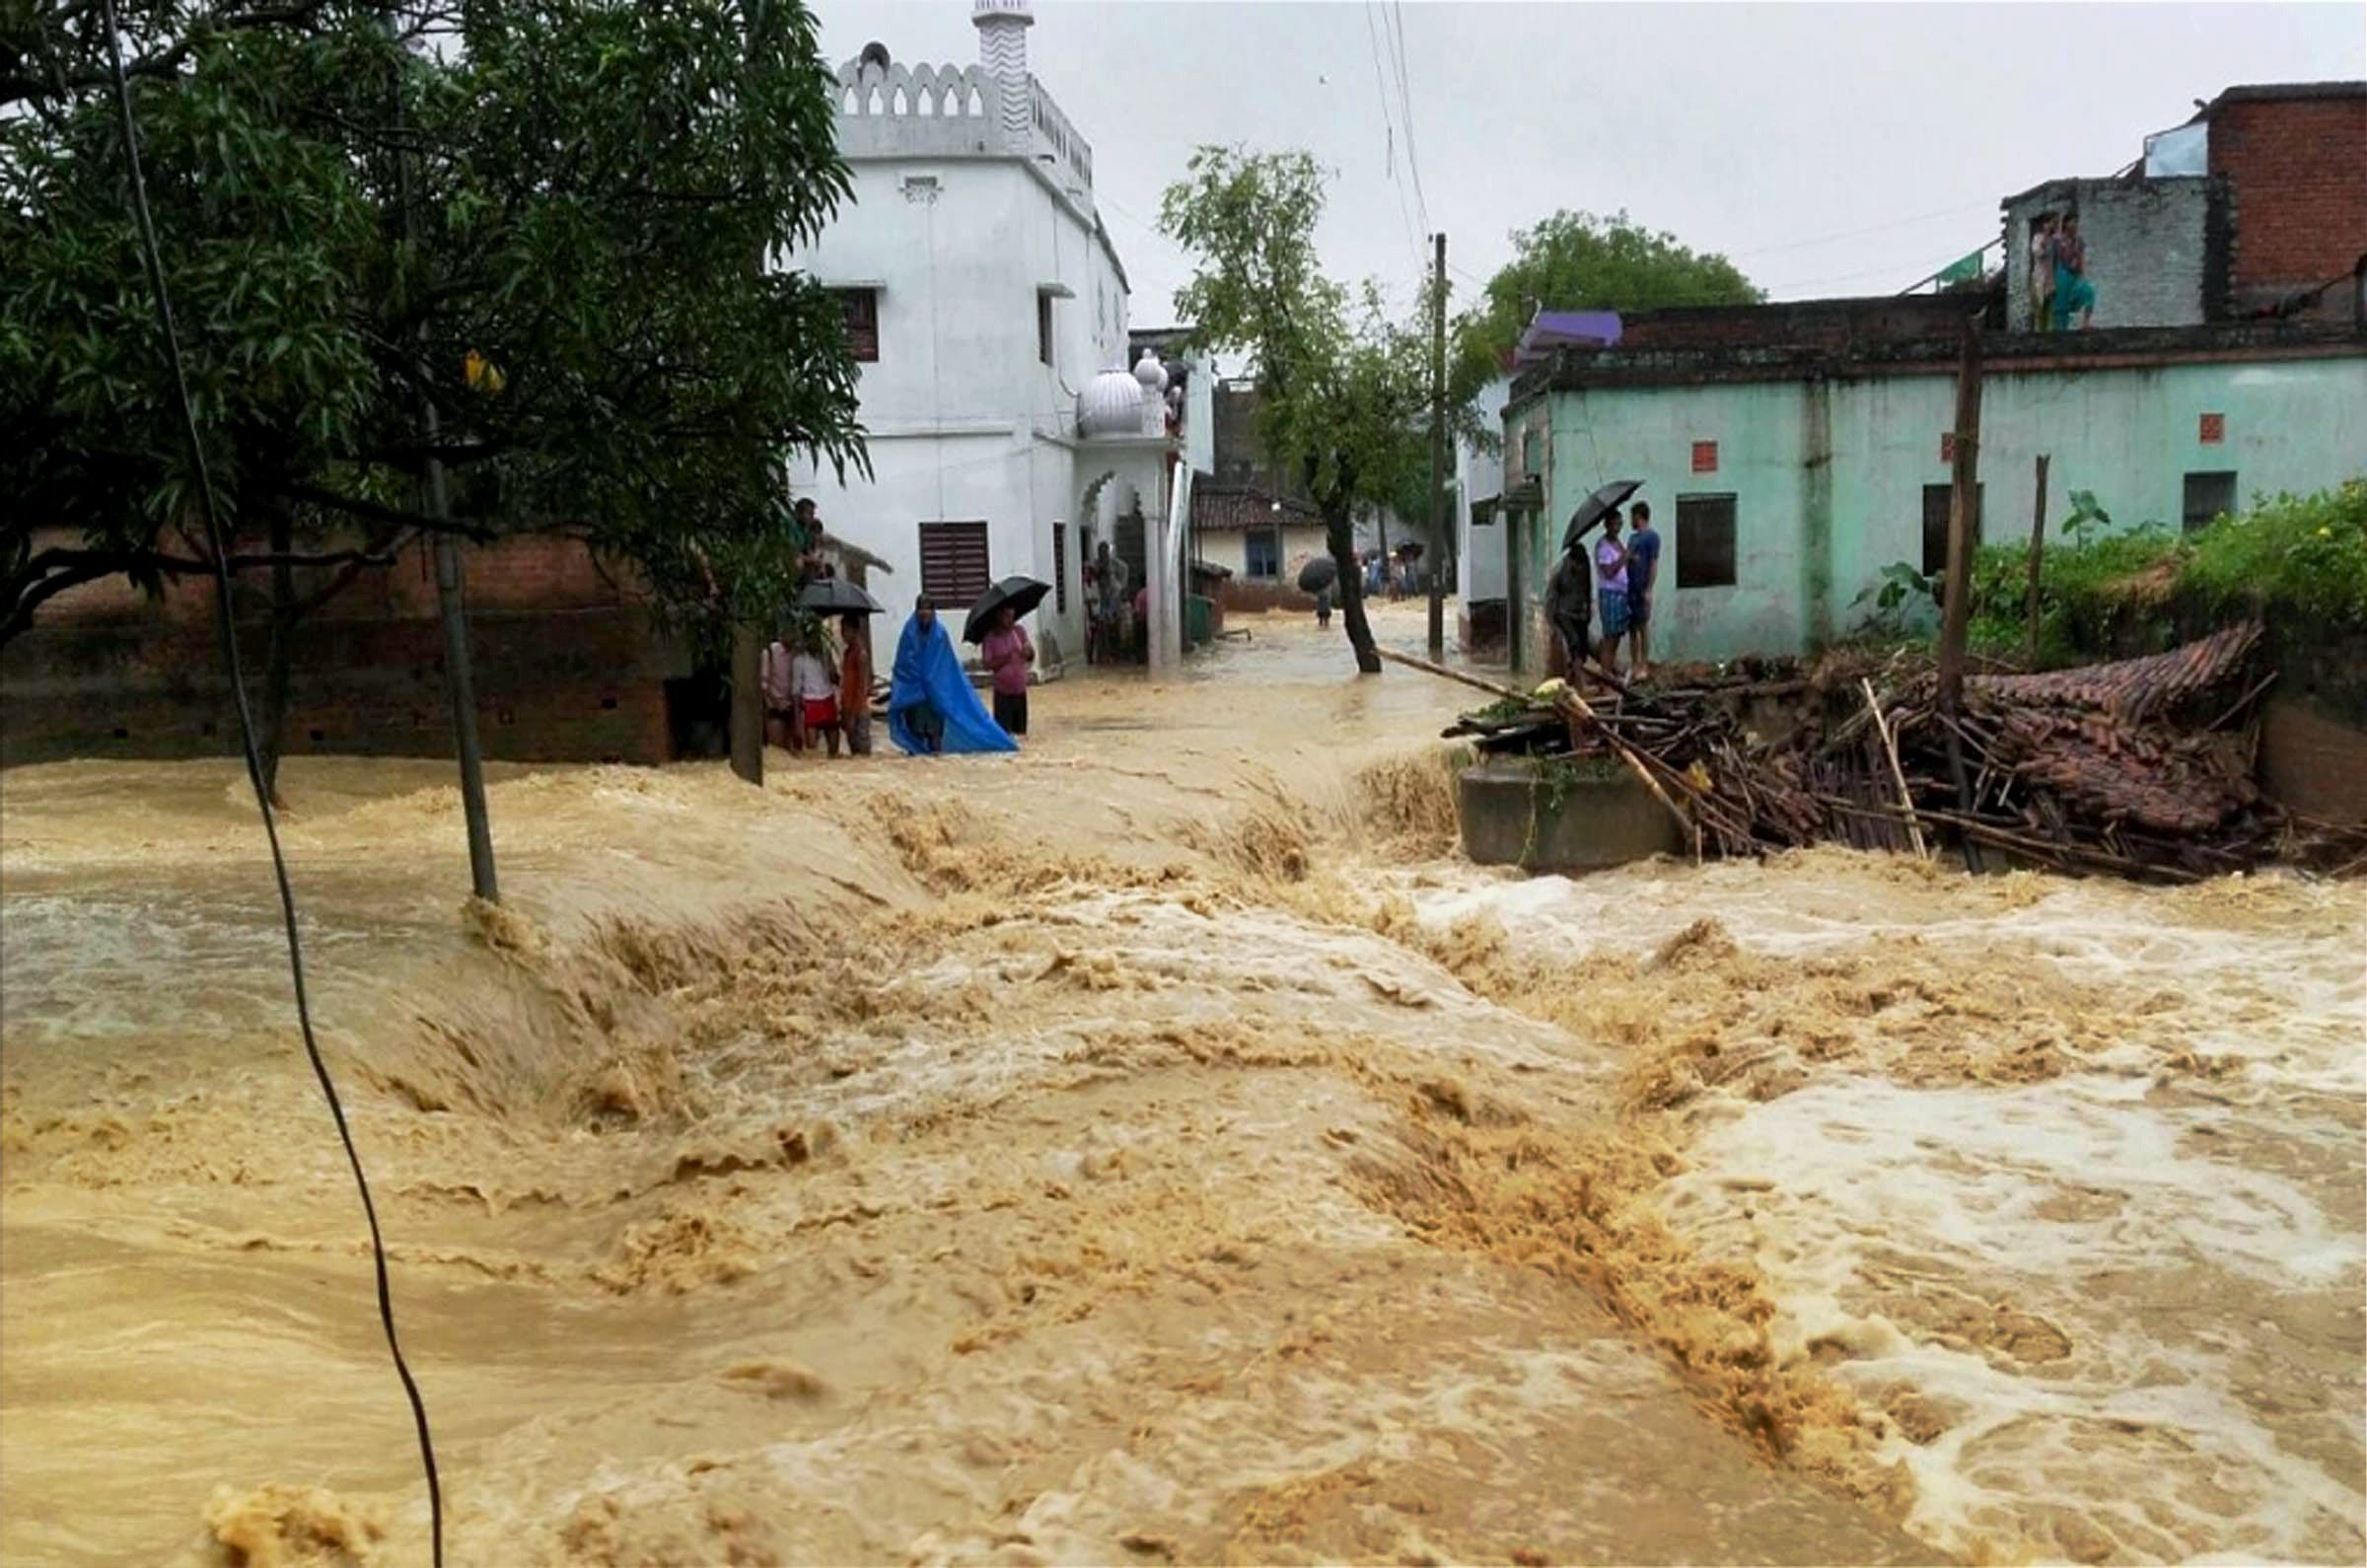 Floodwaters gush through a street in West Champaran, Bihar. (Credit: PTI)